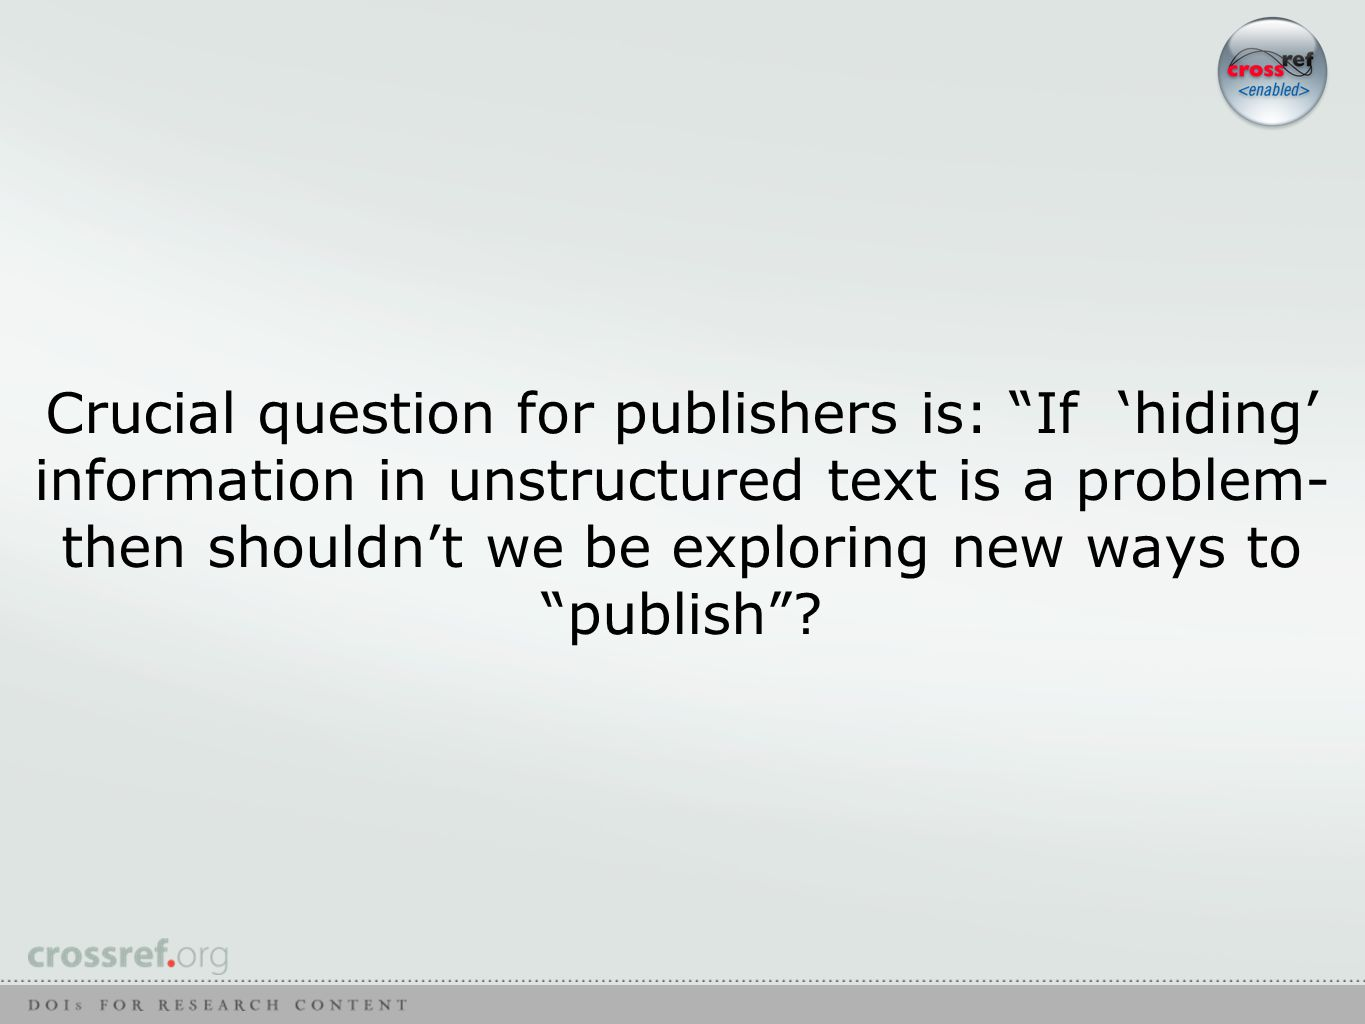 Crucial question for publishers is: If 'hiding' information in unstructured text is a problem- then shouldn't we be exploring new ways to publish